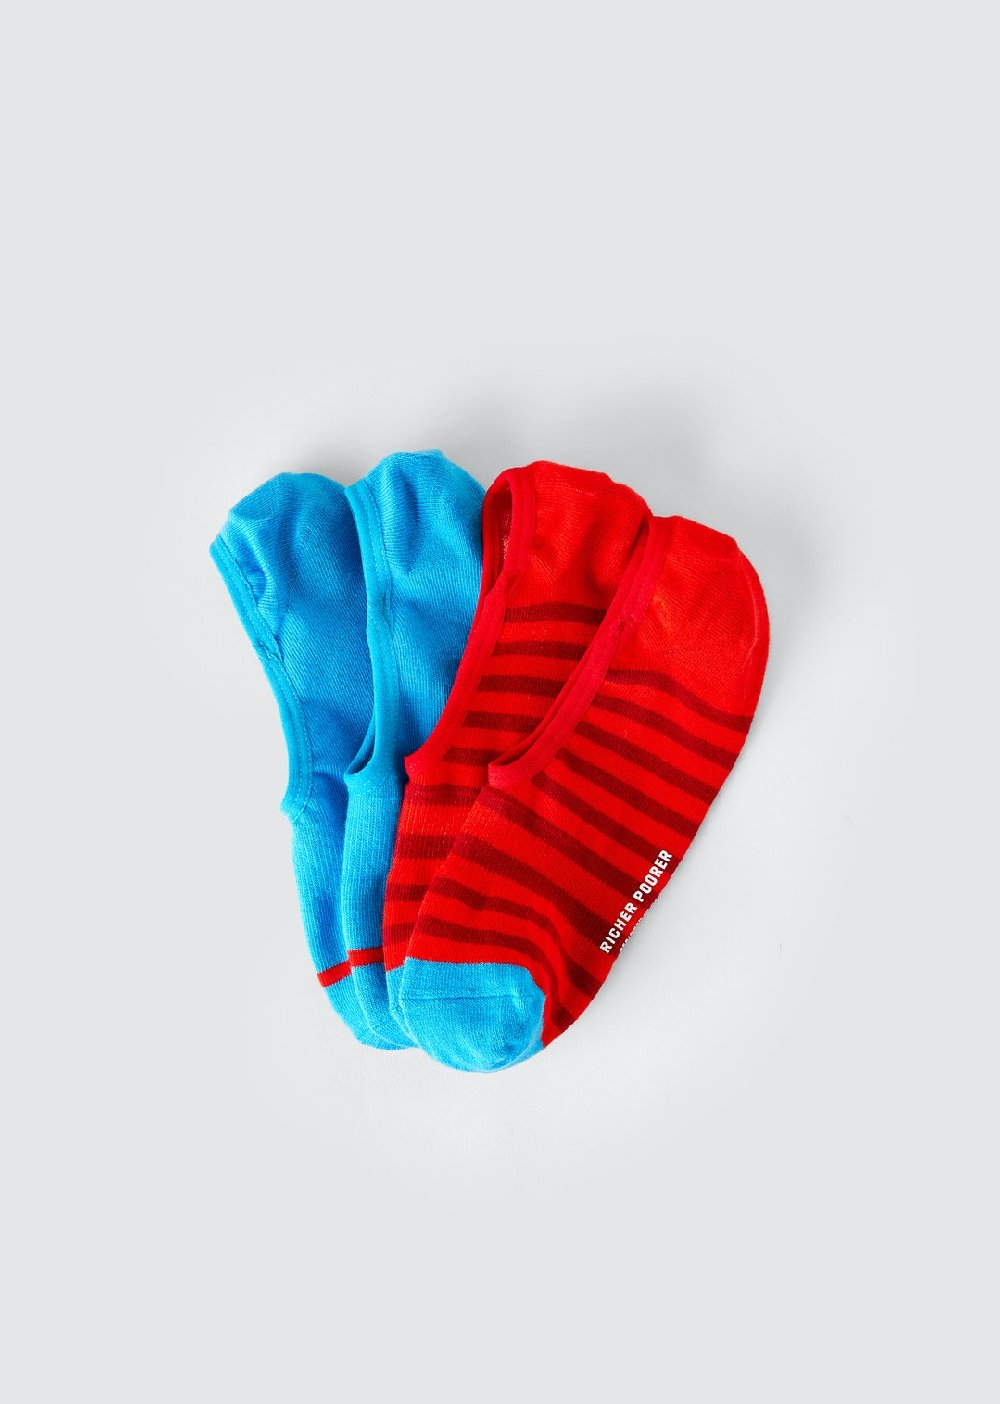 Richer Poorer no-show red/blue socks, 2-pack.